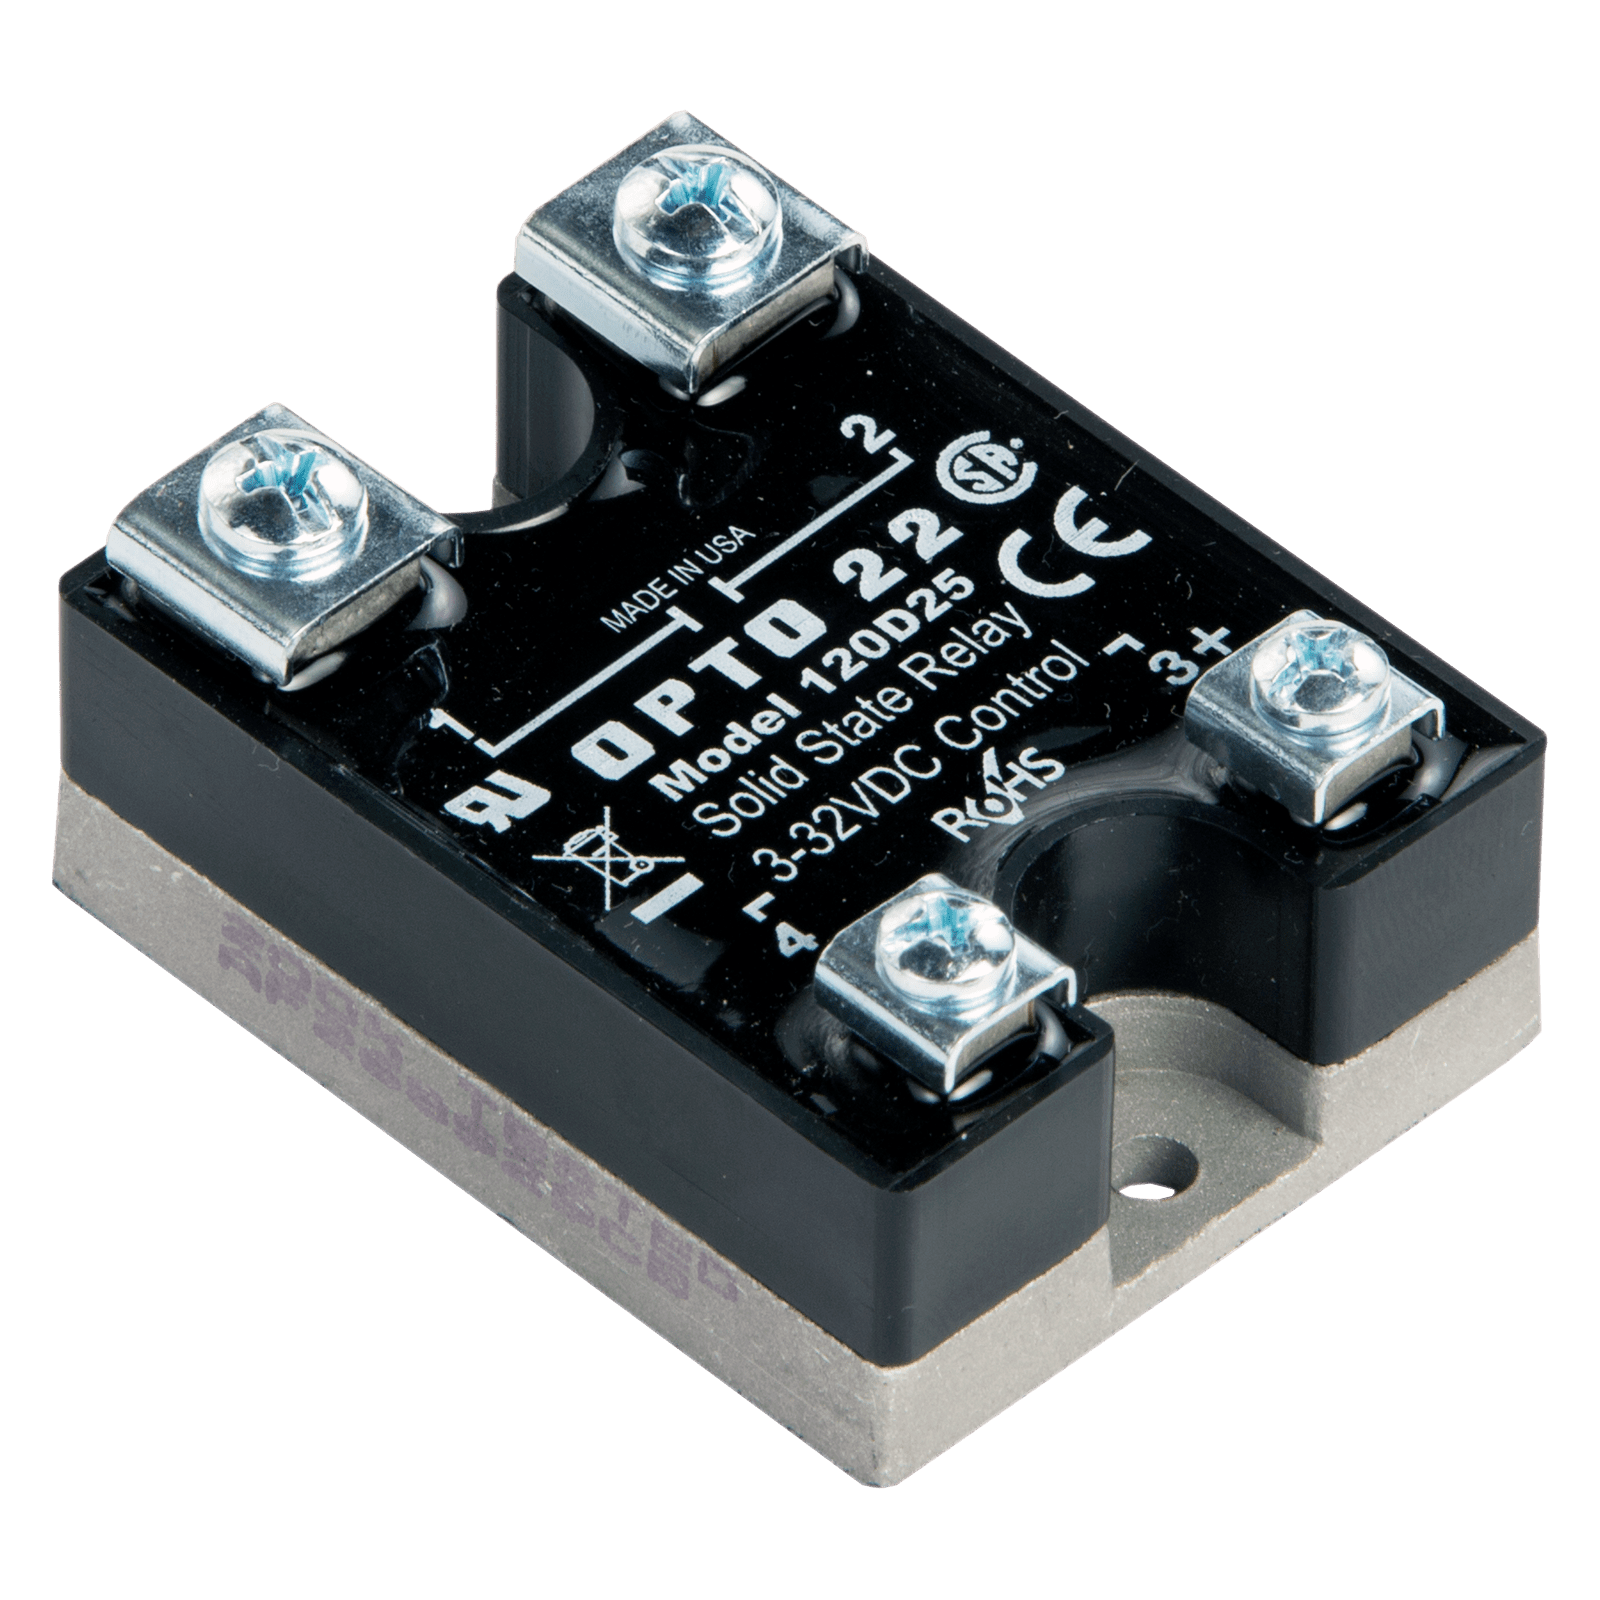 hight resolution of opto22 120d25 120 vac 25 amp dc control solid state relay ssr corsica wiring diagram opto 22 ssr wiring diagram